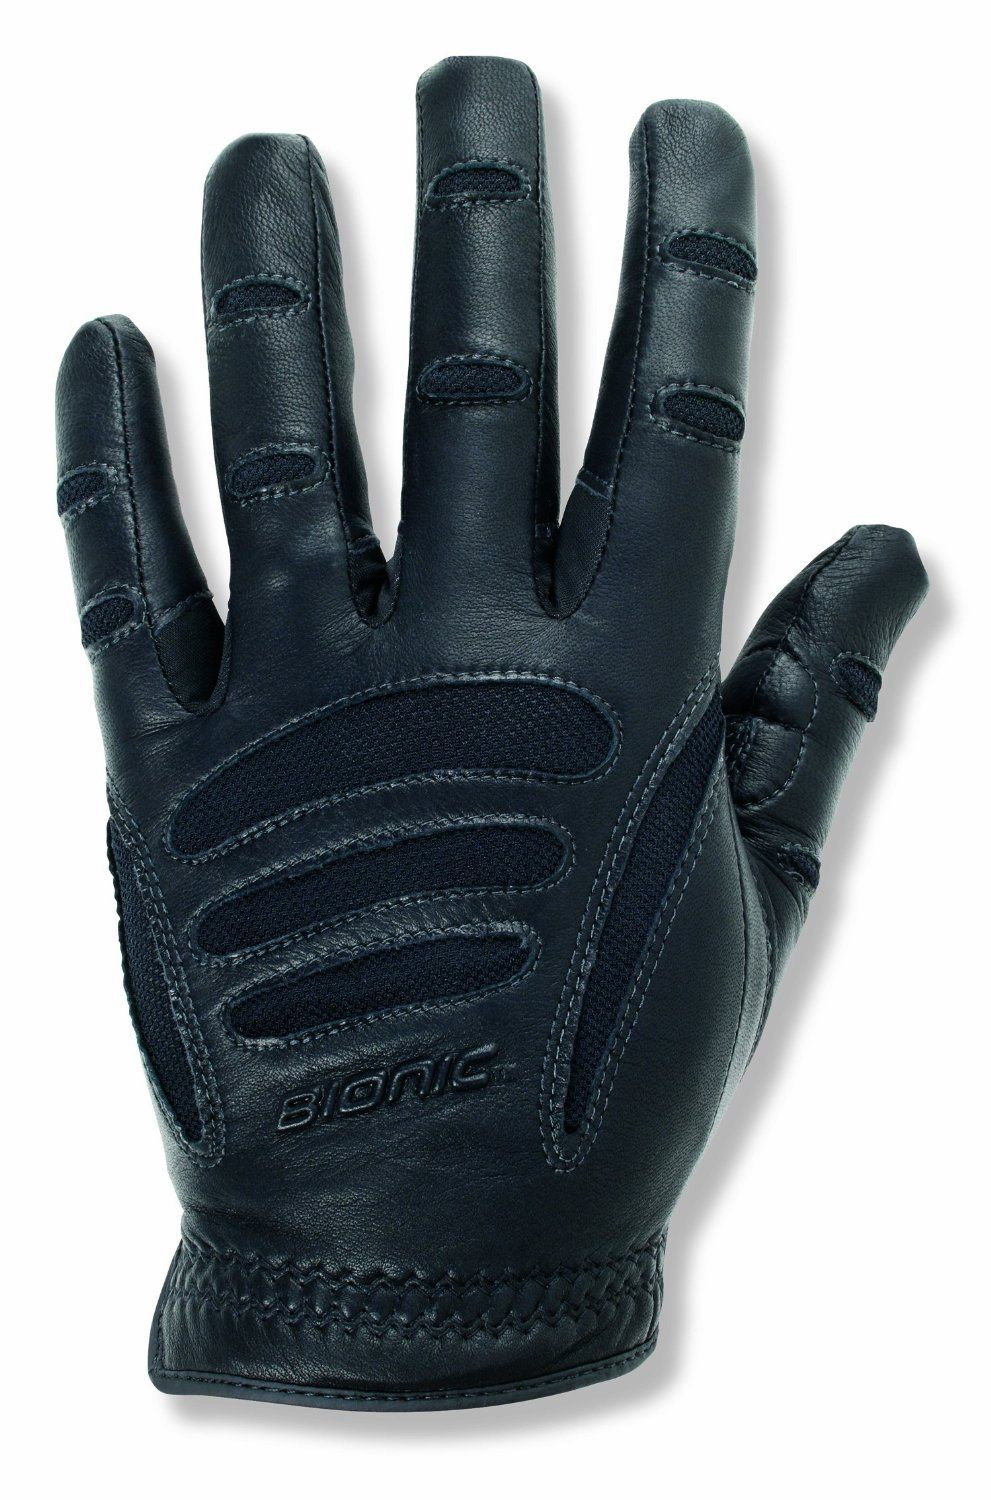 Leather gloves mens amazon - Amazon Com Bionic Men S Driving Gloves Black Xx Large Sports